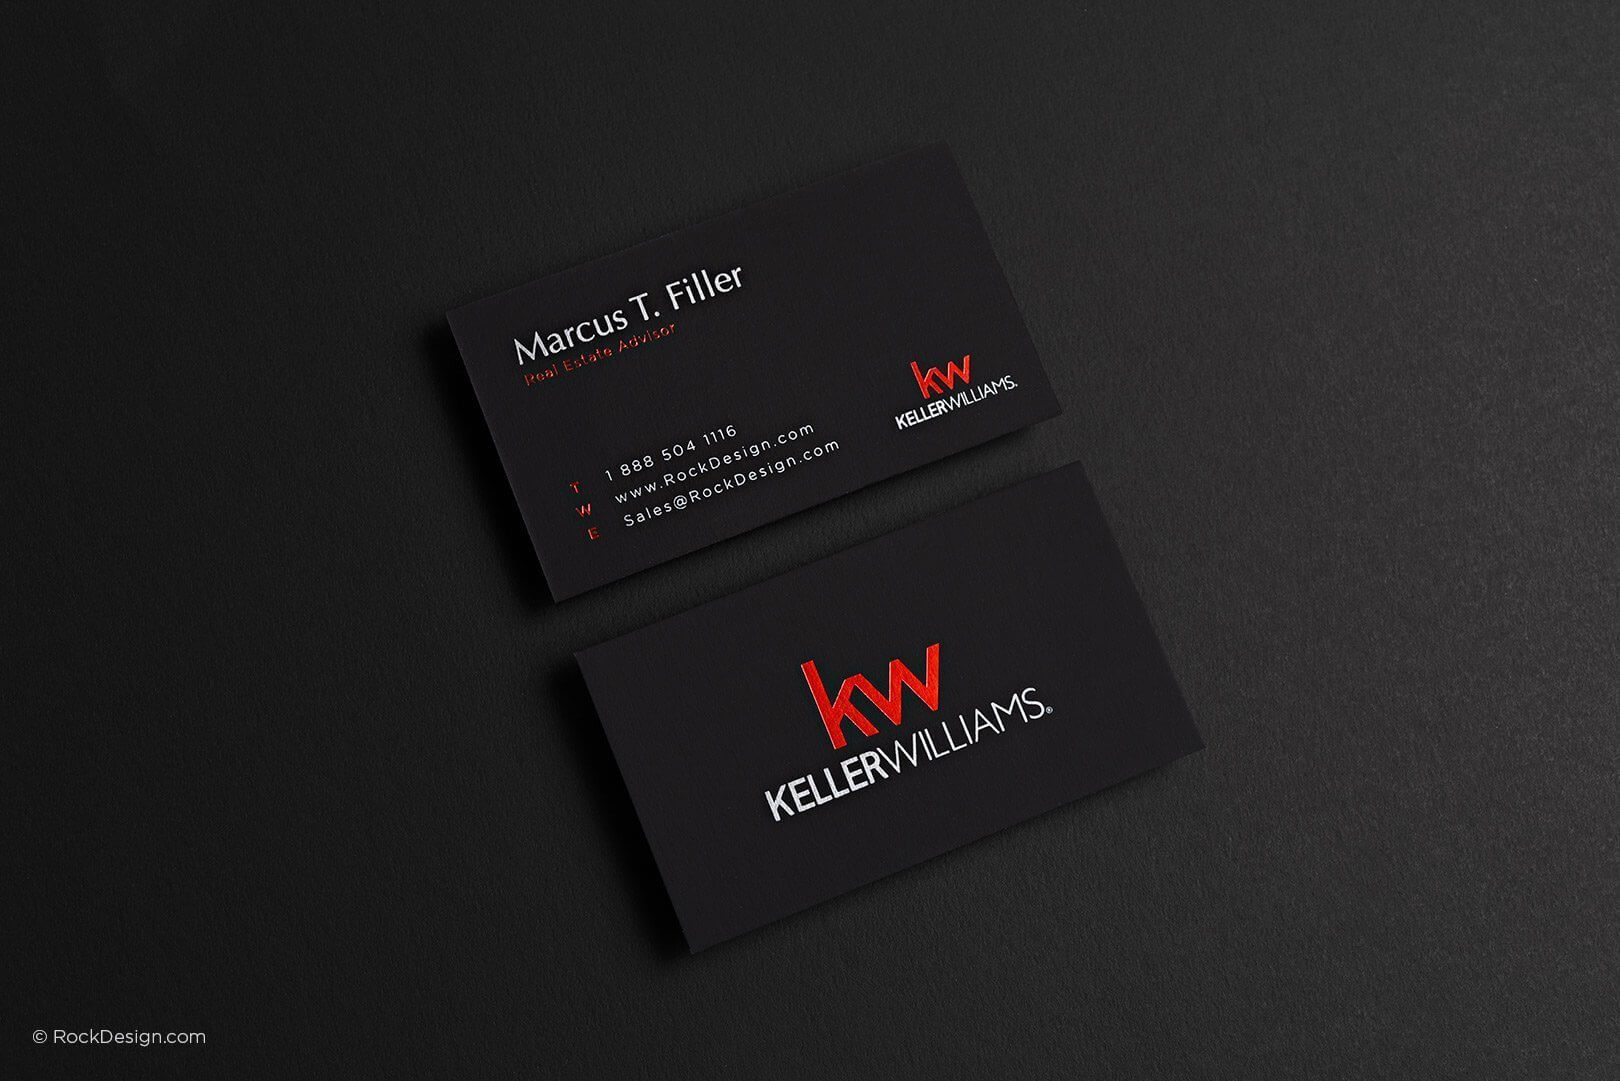 Free Keller Williams Business Card Template With Print With Keller Williams Business Card Templates